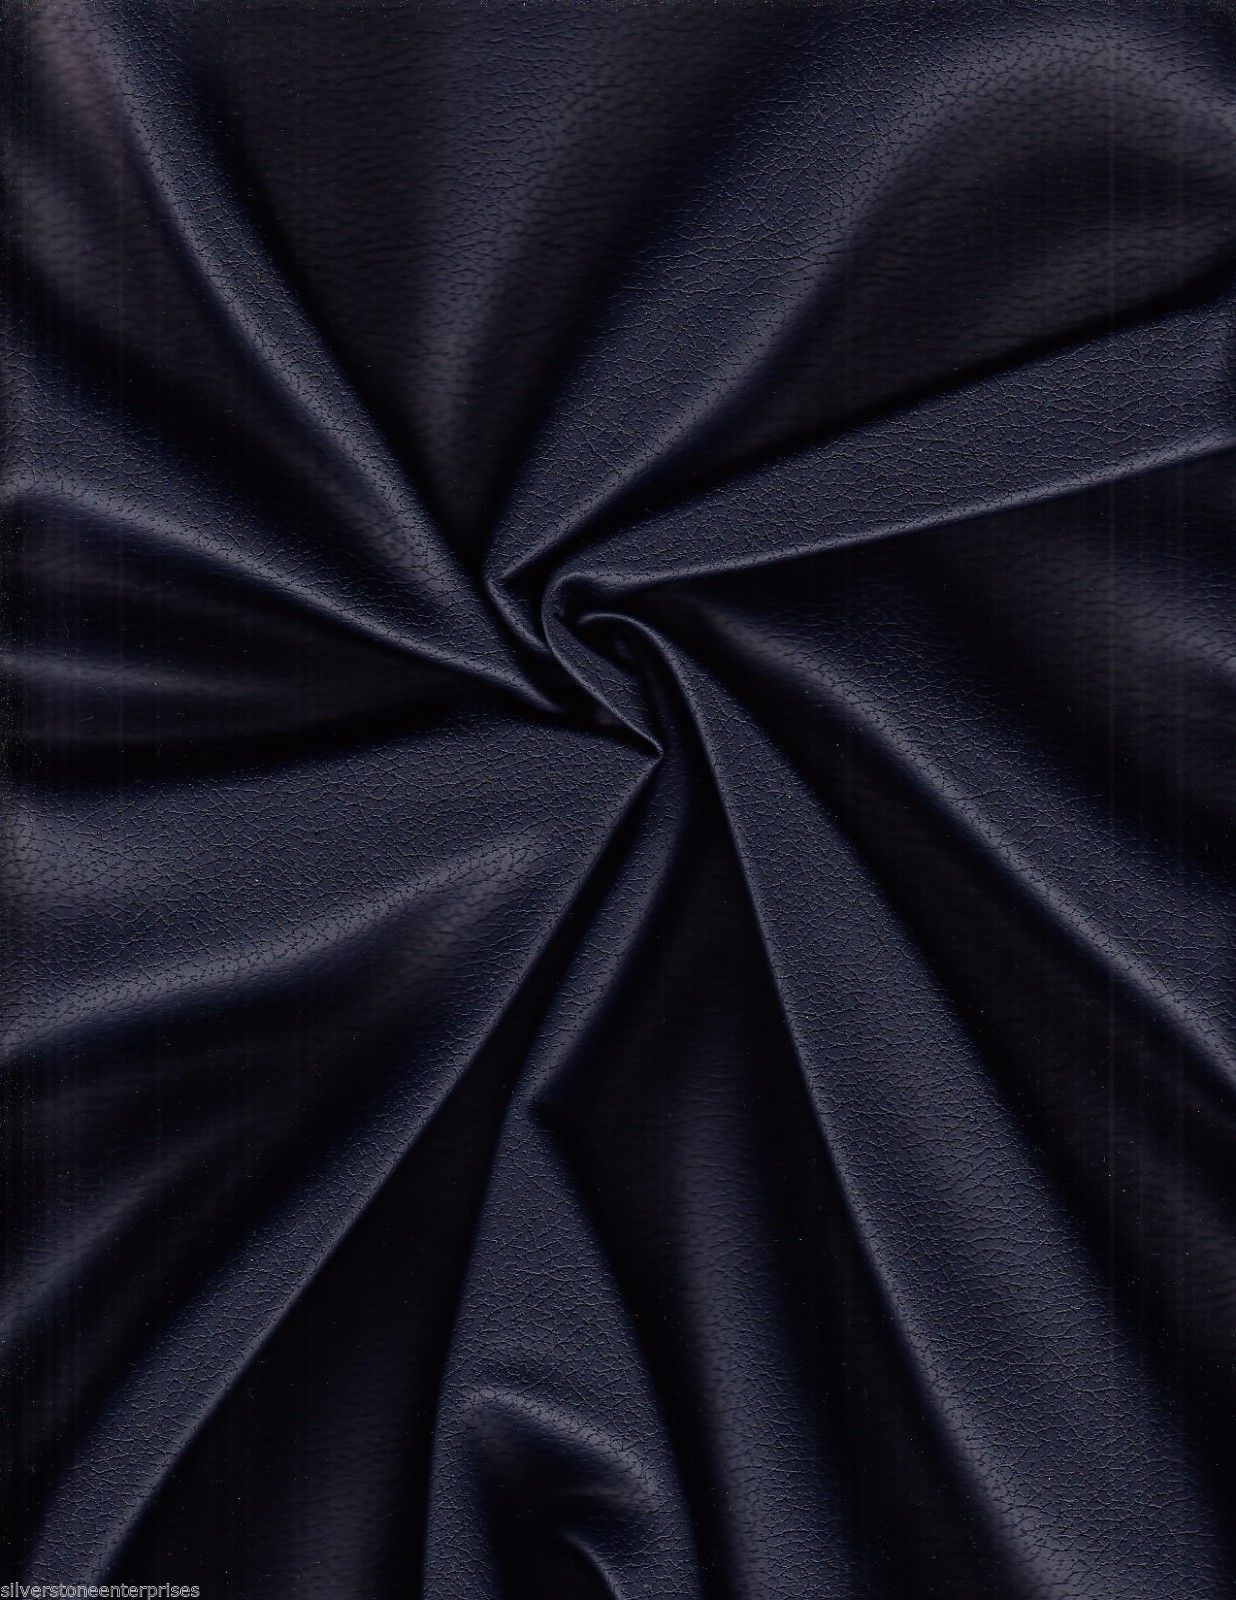 4 yds Ultrafabrics Upholstery Fabric Brisa Faux Leather Indigo Blue 303-2683 AS4